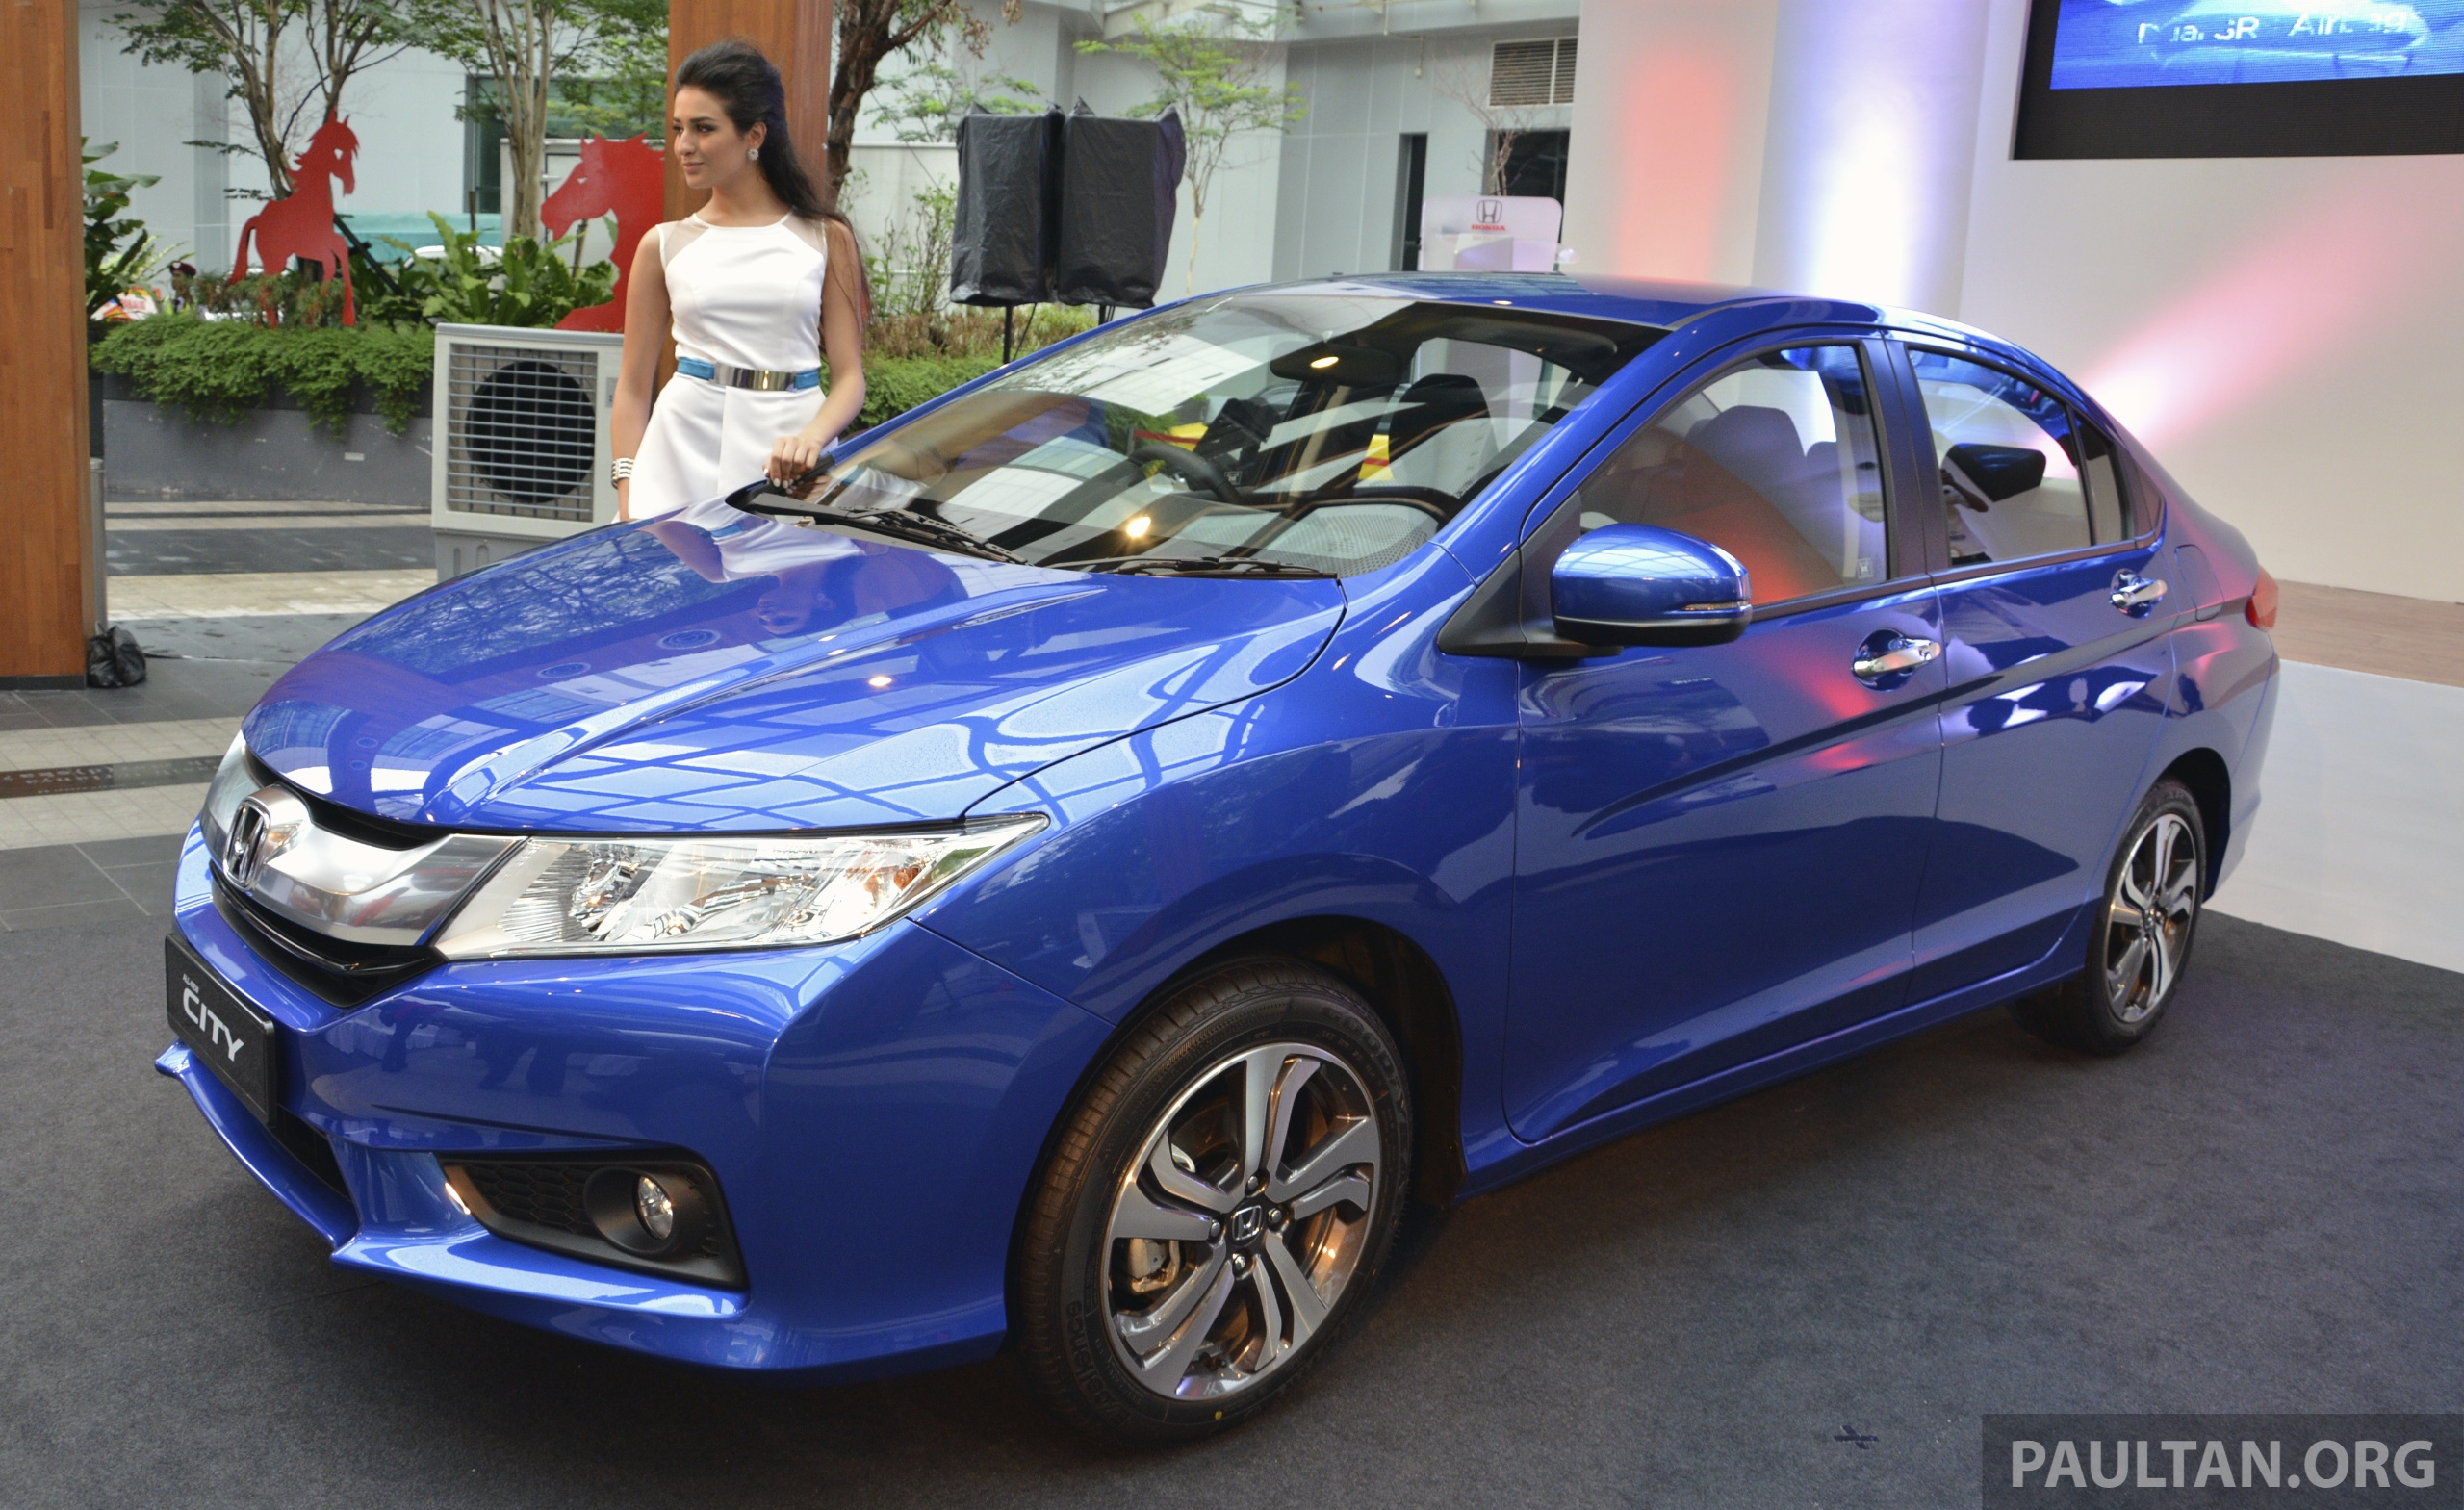 new car release malaysia 2014Honda Jazz New Model 2014 Price Malaysia  CFA Vauban du Btiment